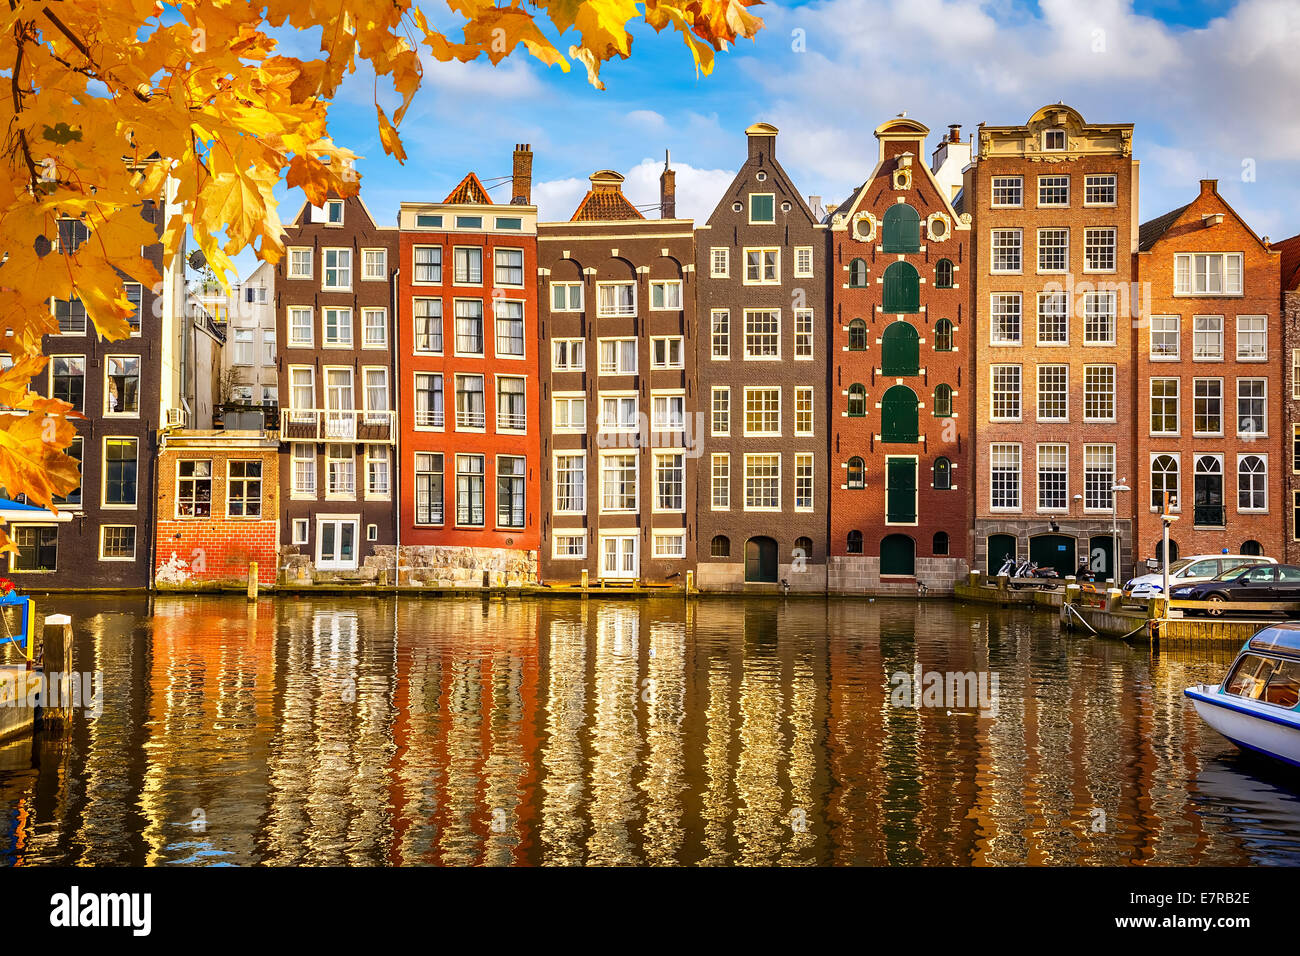 Vieux bâtiments à Amsterdam Photo Stock